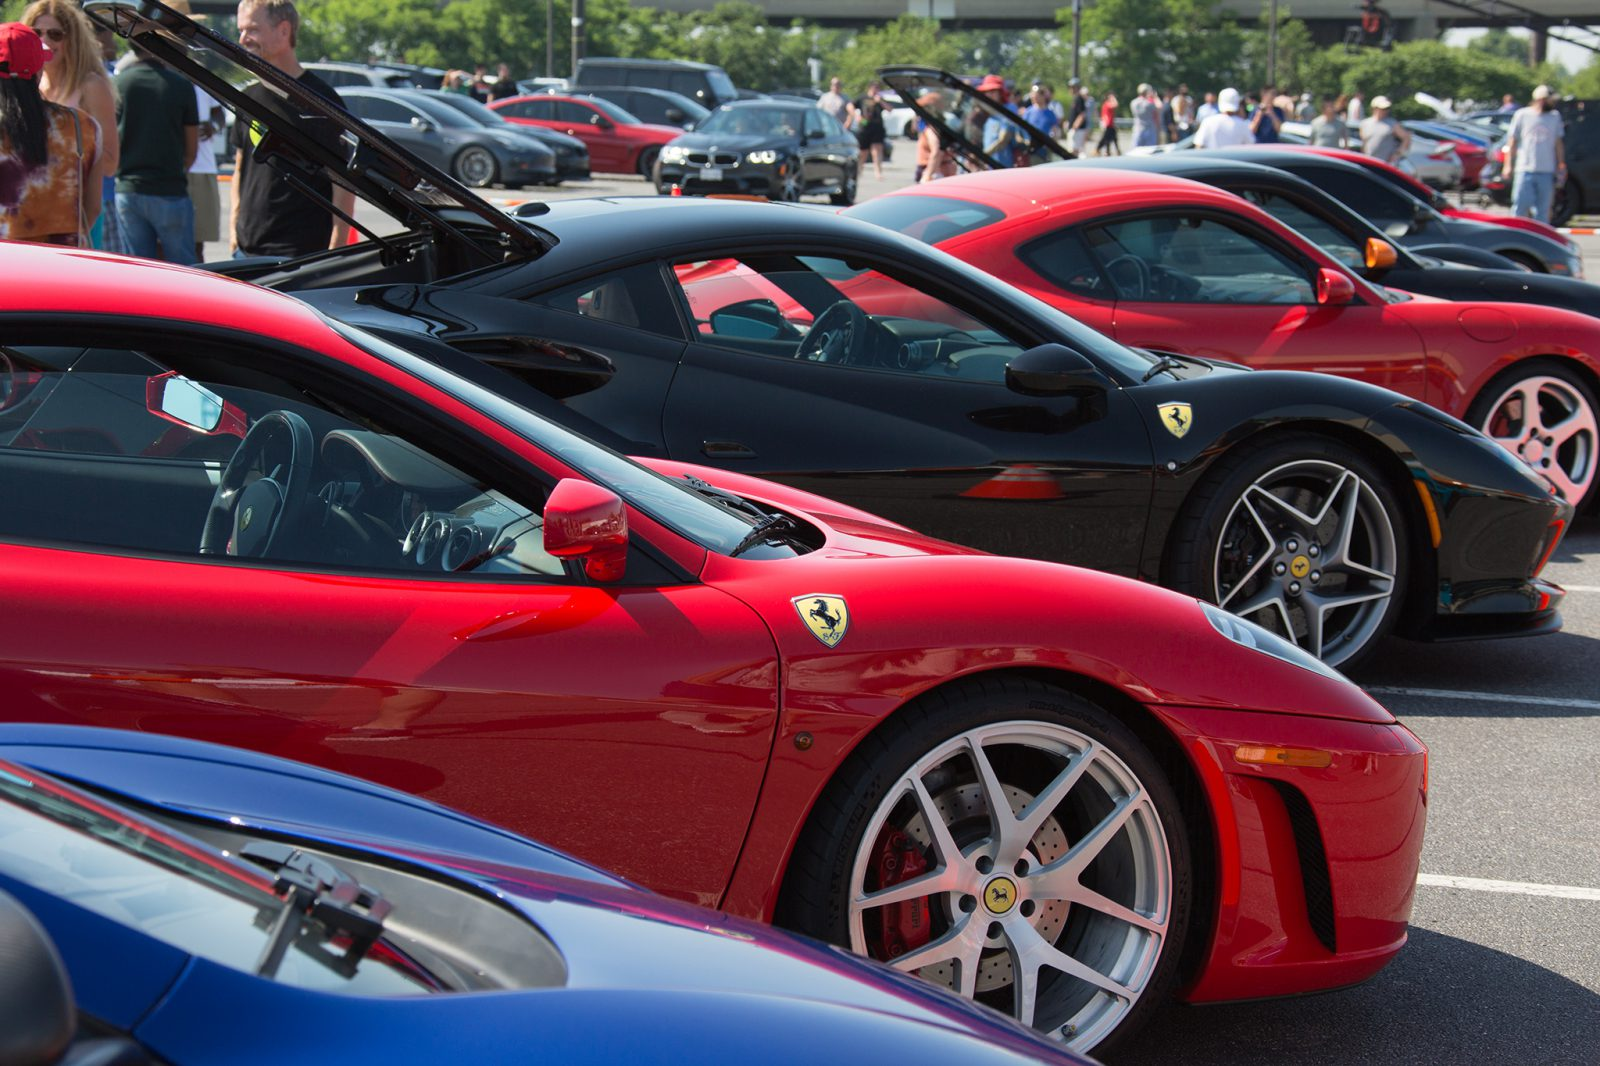 Rows of Ferrari's at the CF Charity Supercar show